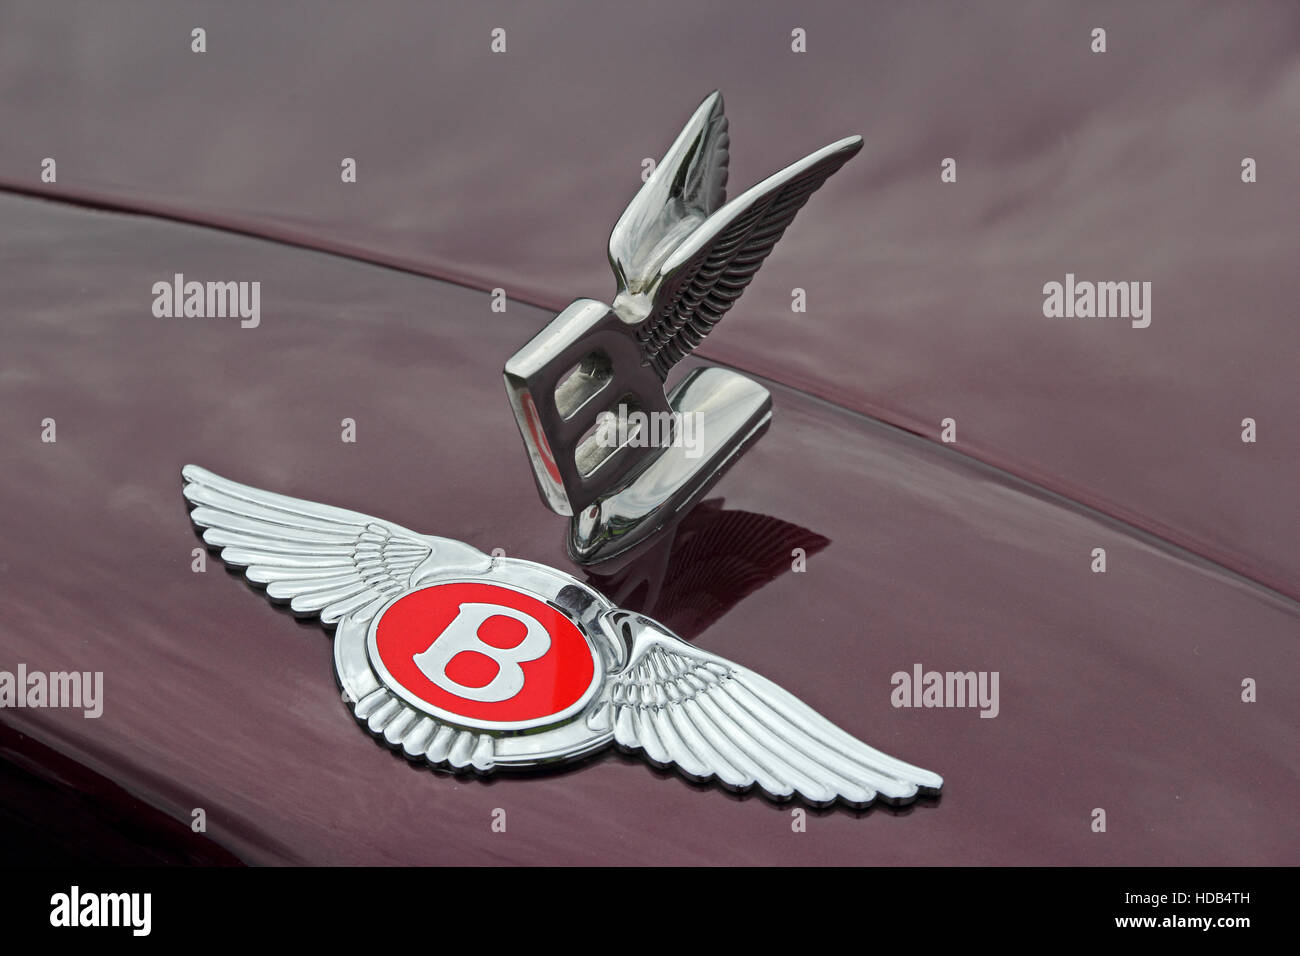 Red Bentley badge and Flying B mascot on front of maroon car Stock Photo